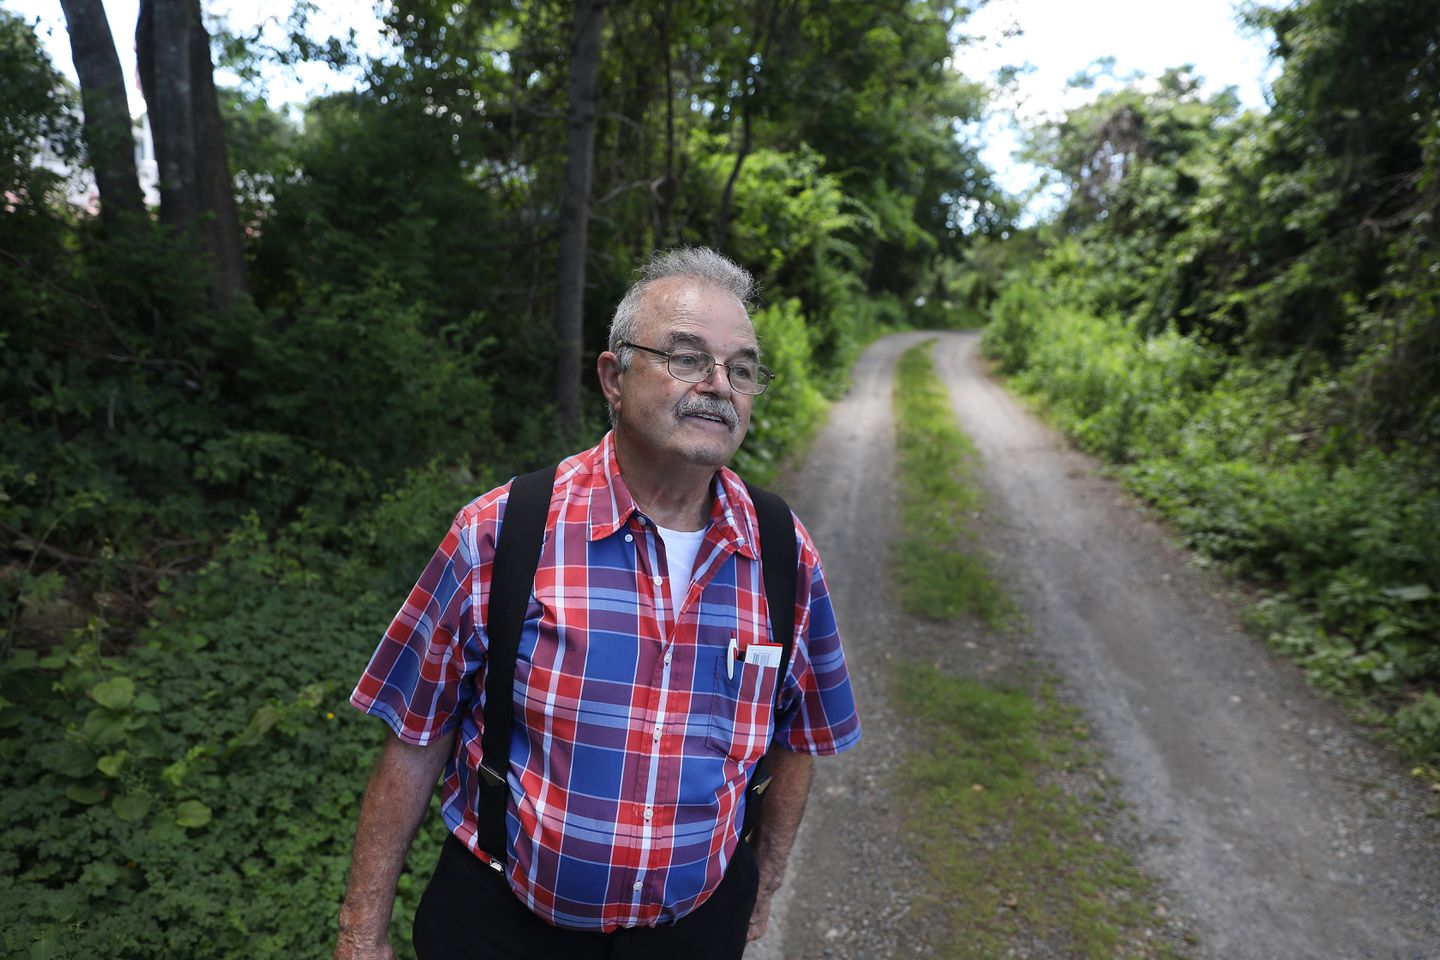 Joseph McDonald has been a champion of allowing the public onto the beach at Old Rexhame Terrace, angering many of his neighbors.